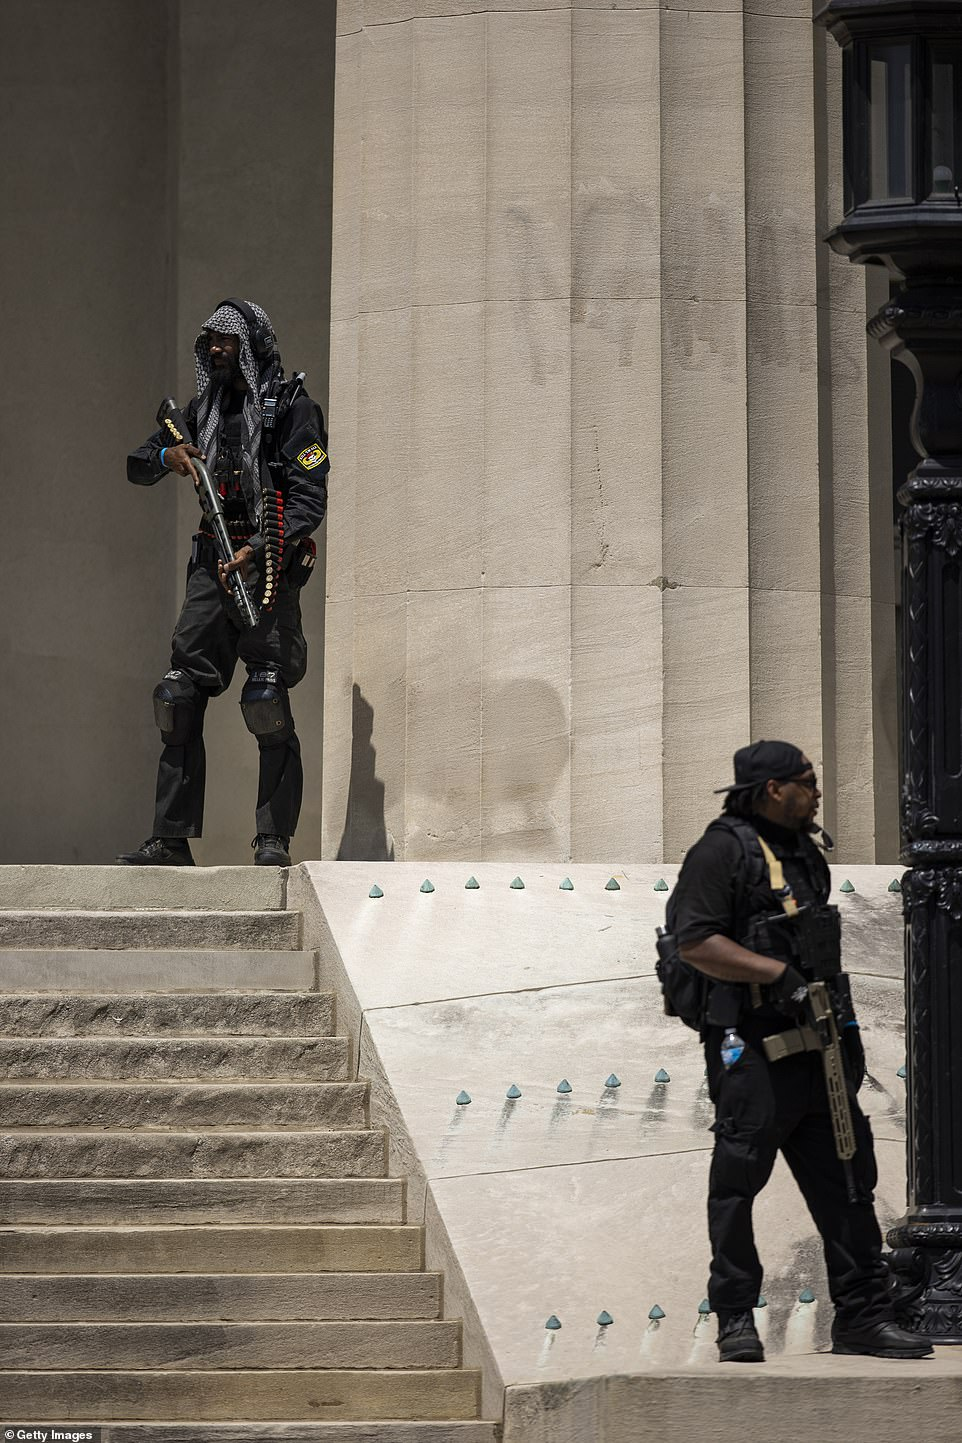 Two members of the armed militia are seen above in Louisville, Kentucky, during a demonstration on Saturday